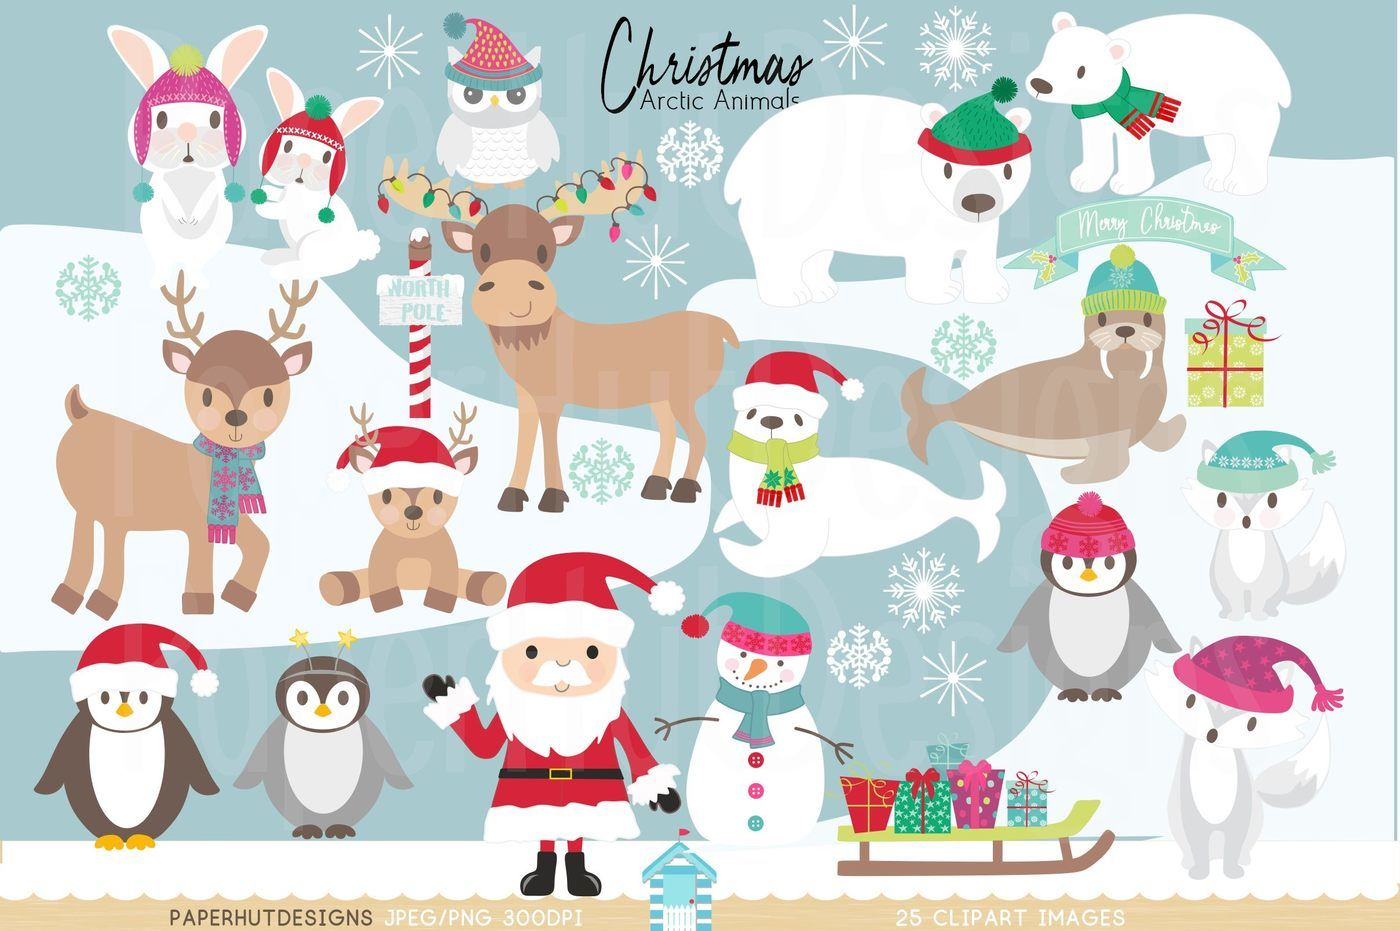 Christmas Arctic Animals Clipart By Paperhutdesigns